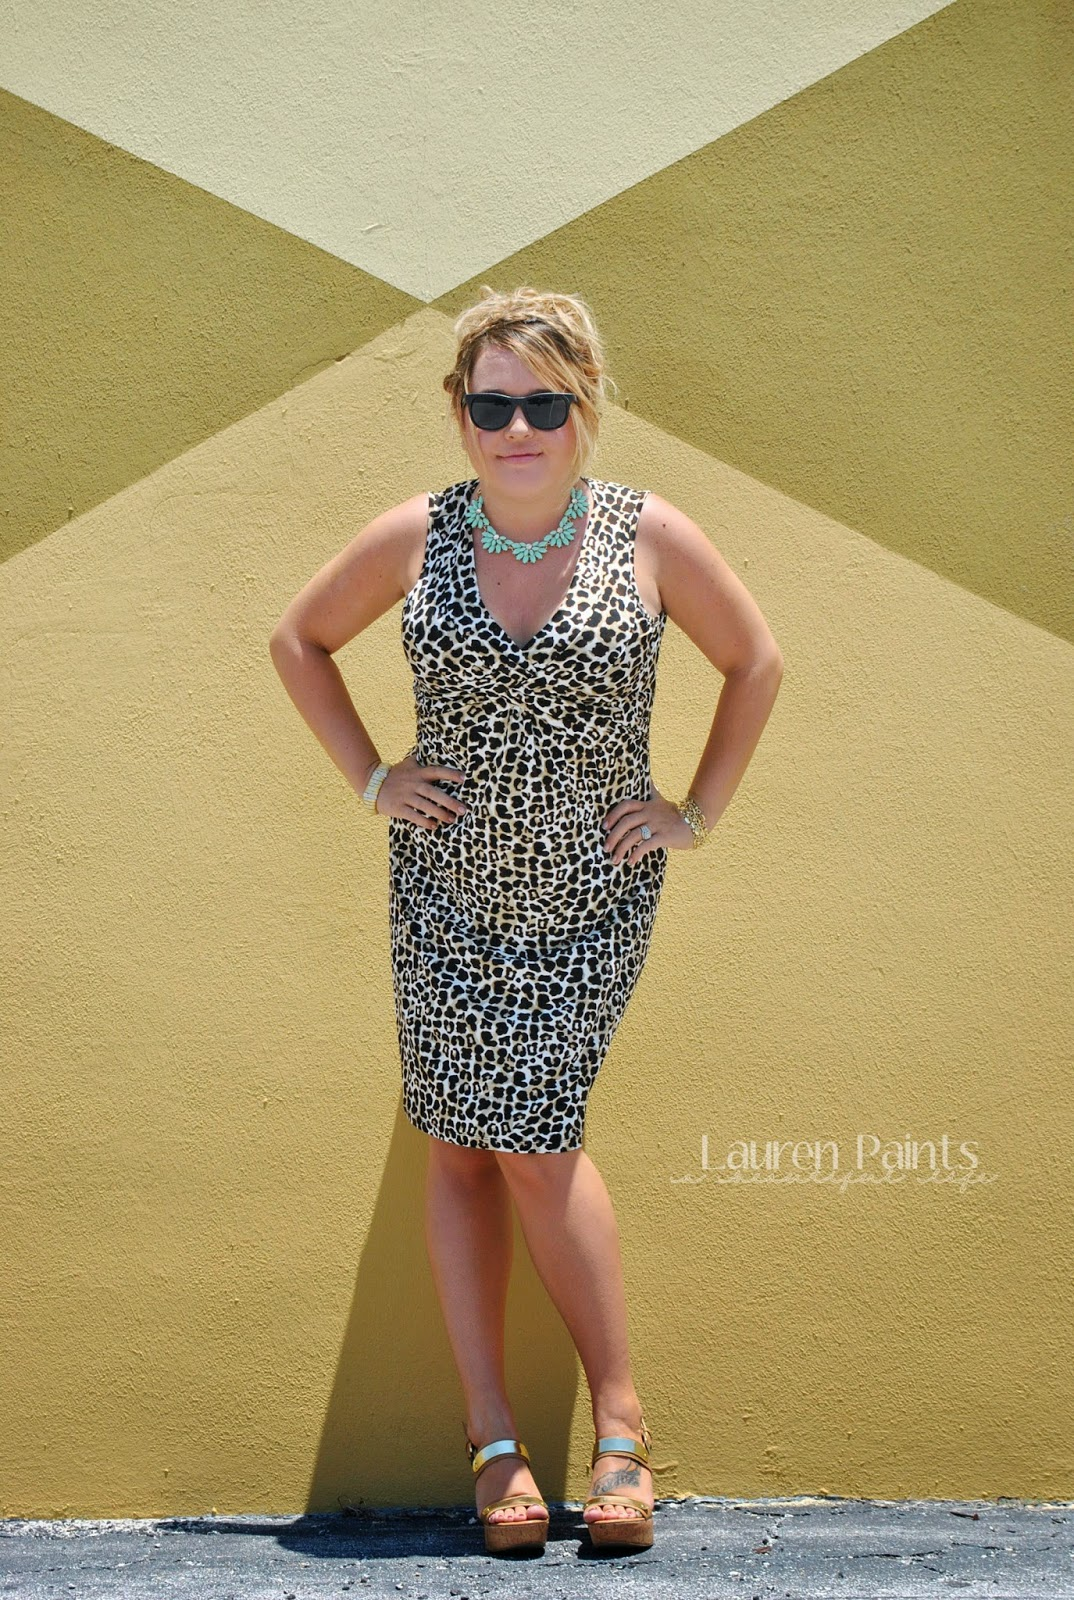 Trendy - One Dress, Styled 4 Ways {on a budget}